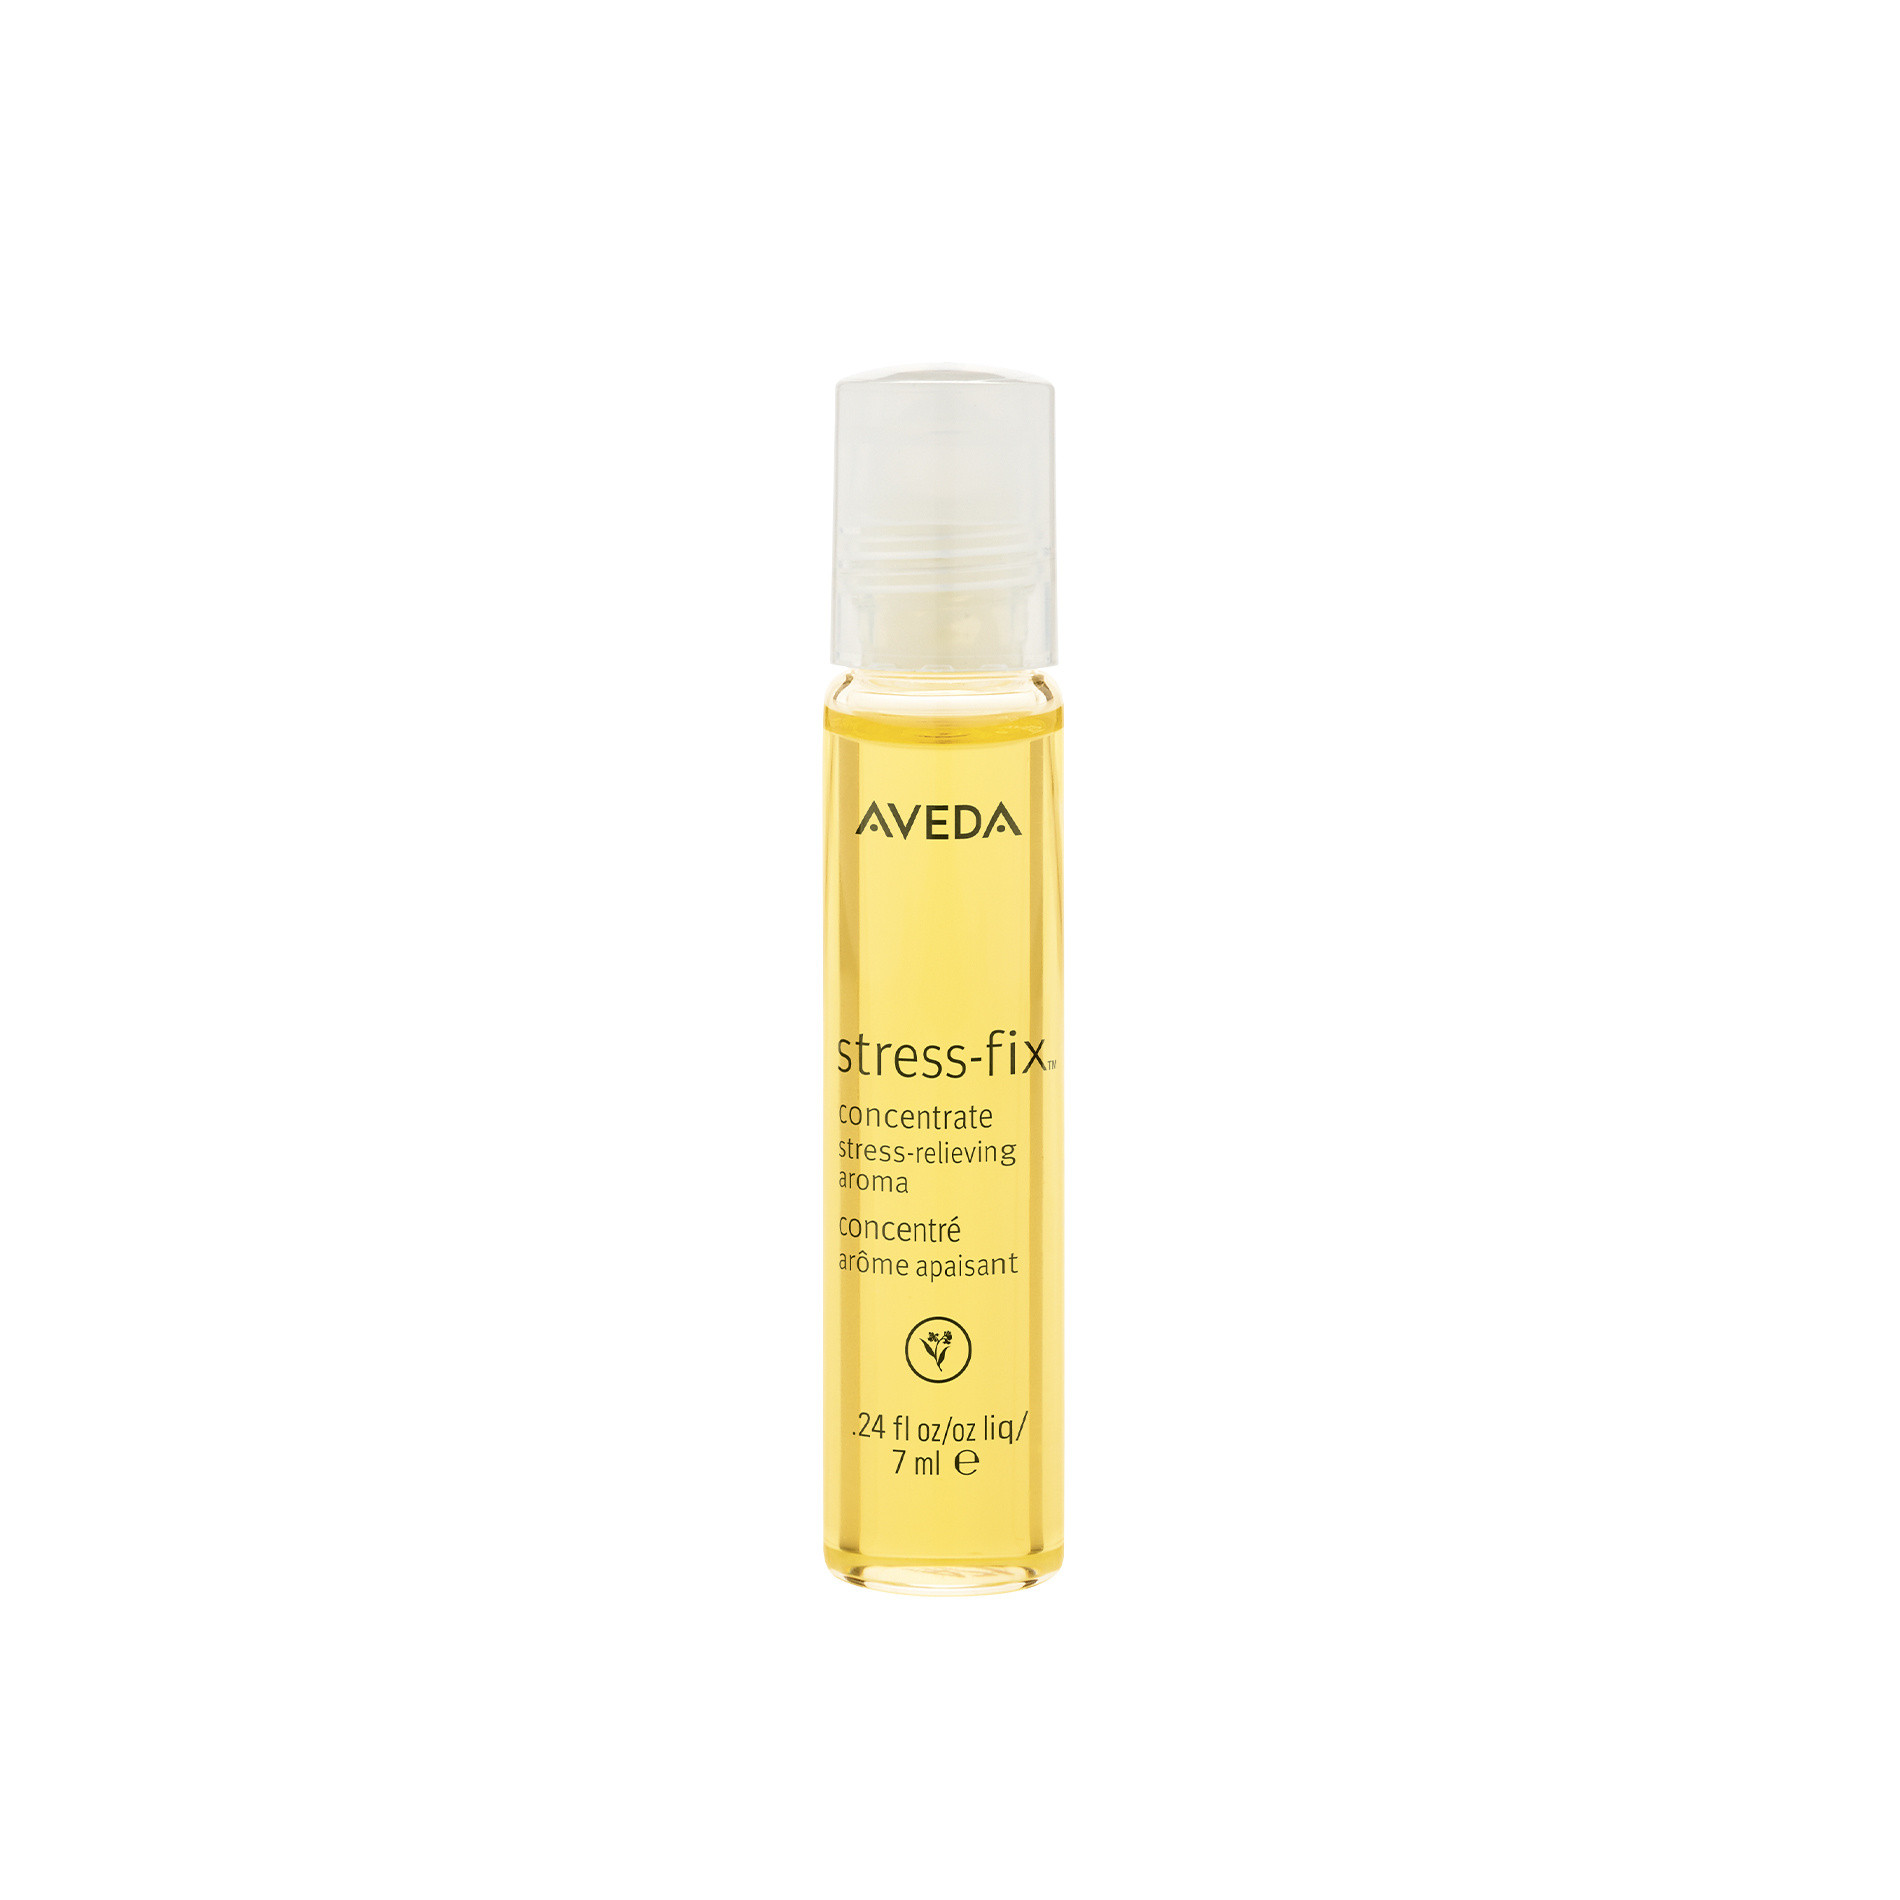 Aveda stress-fix concentrato antistress  7 ml, Viola, large image number 0